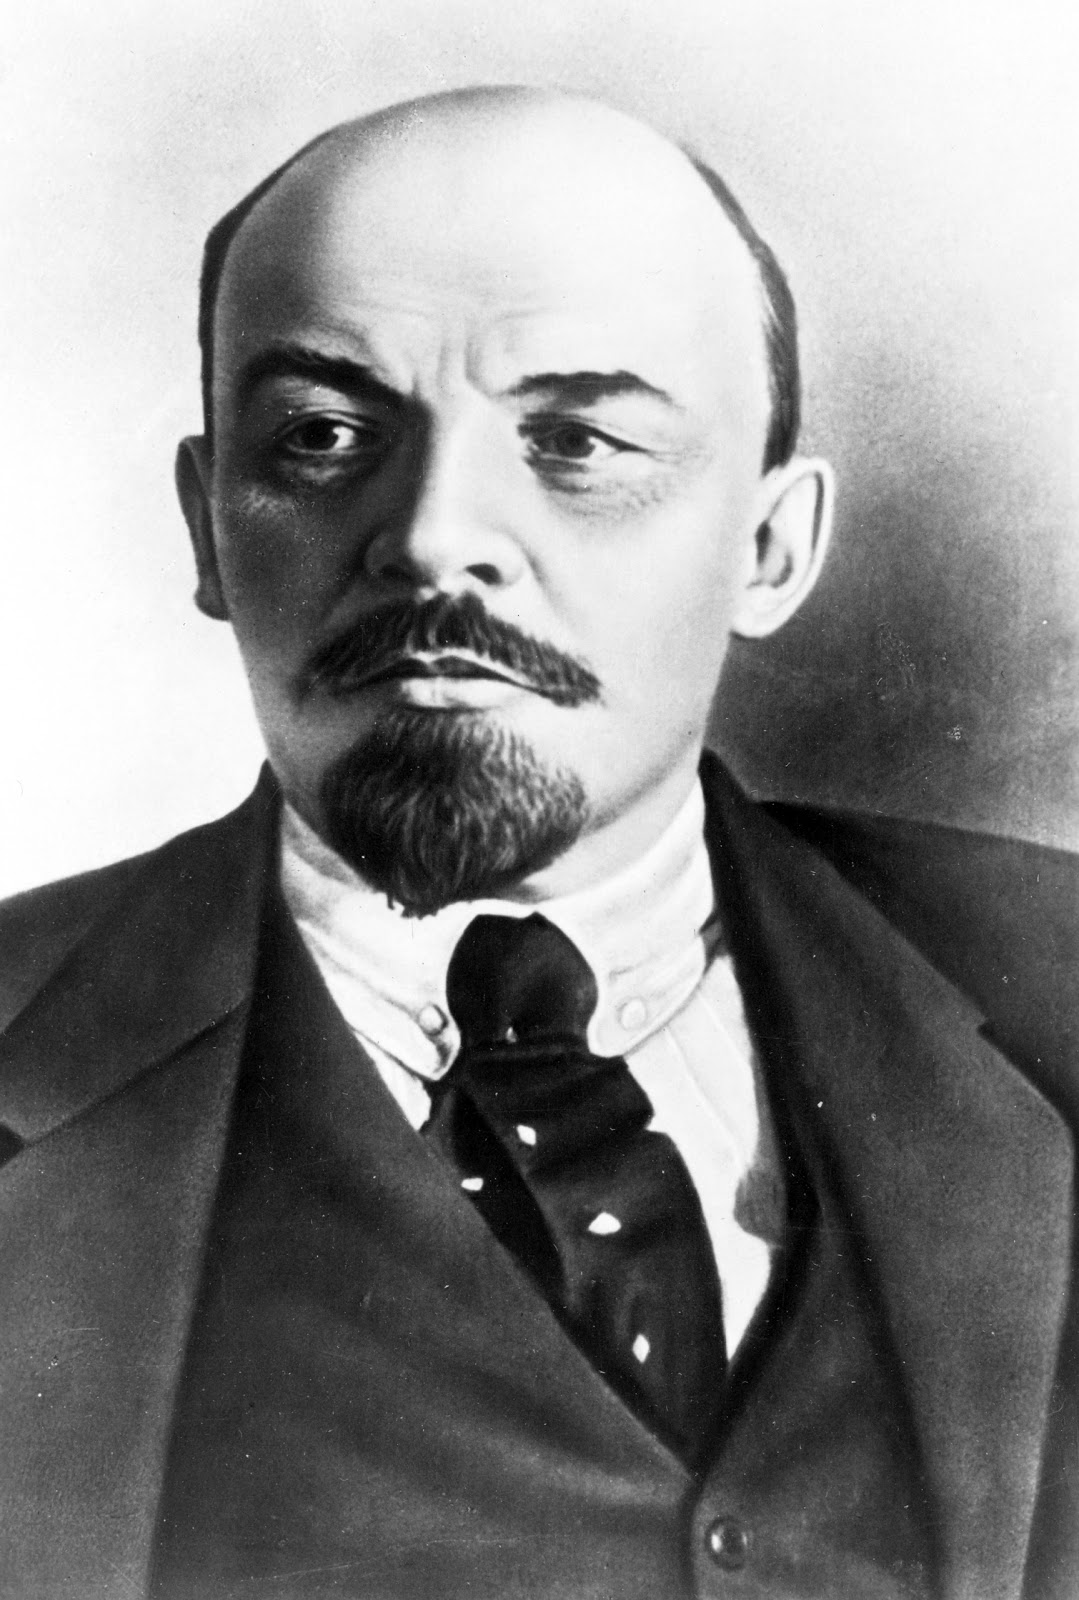 Another Eye Witness Perspective of the Russian Revolution – Written in 1926